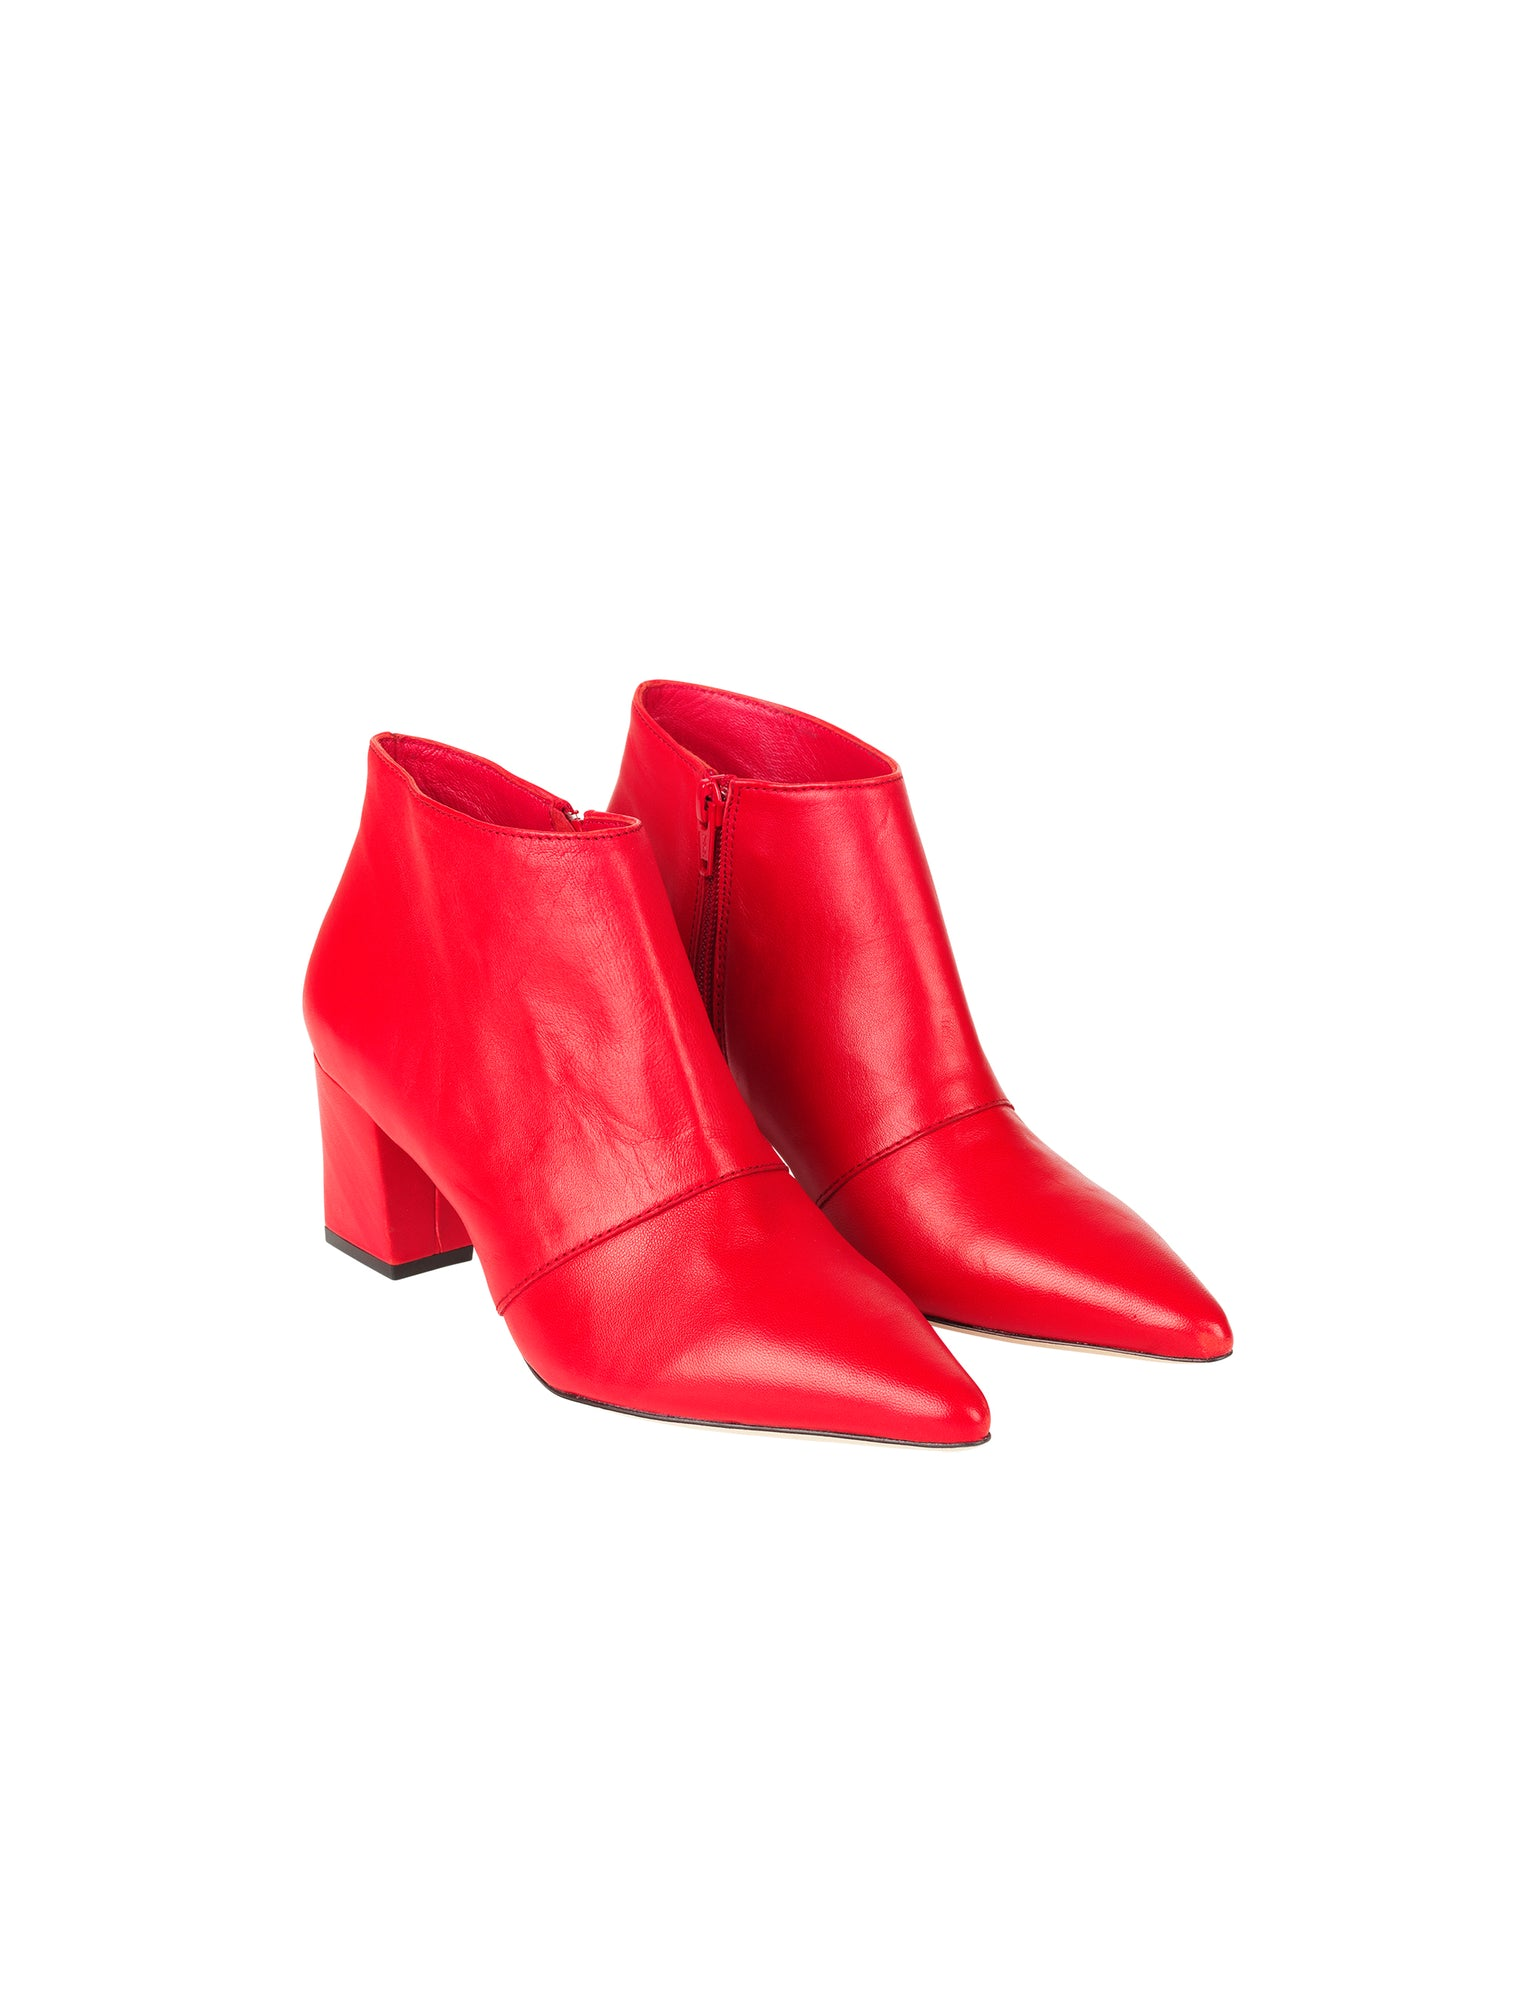 Fine Leather Antone, Bright Red